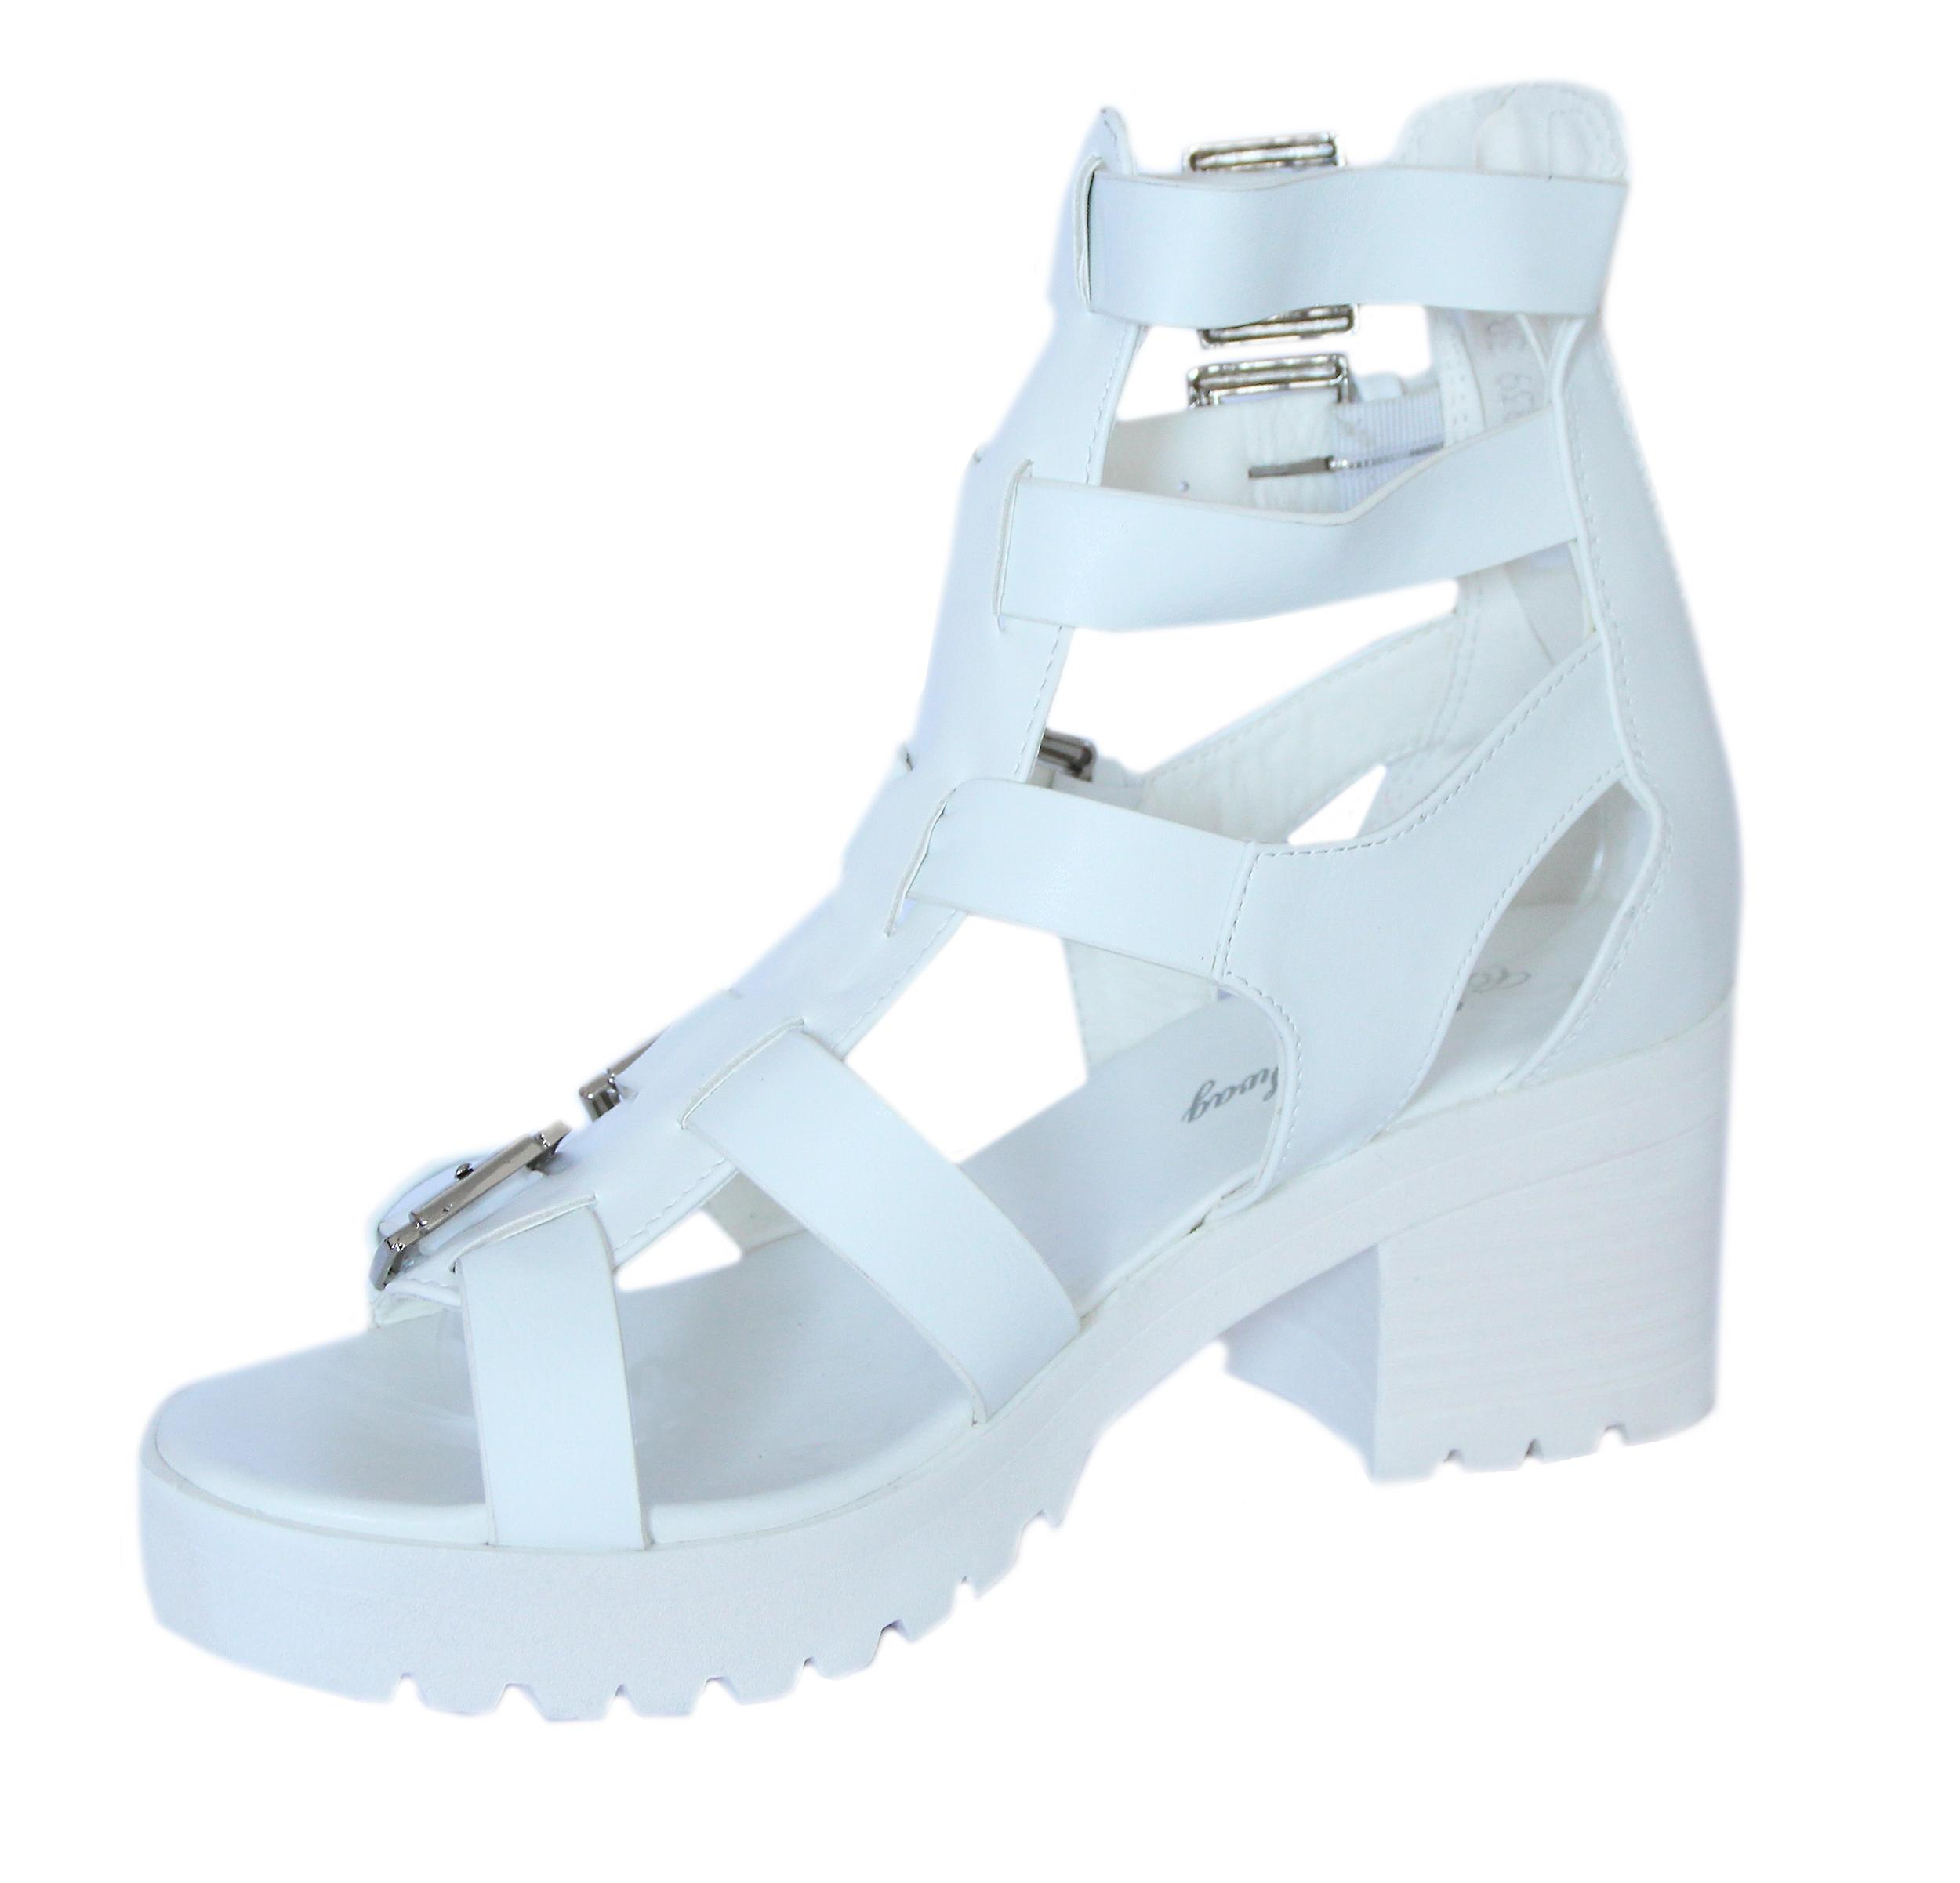 Waooh - Summer Sandal High Heel Gebna